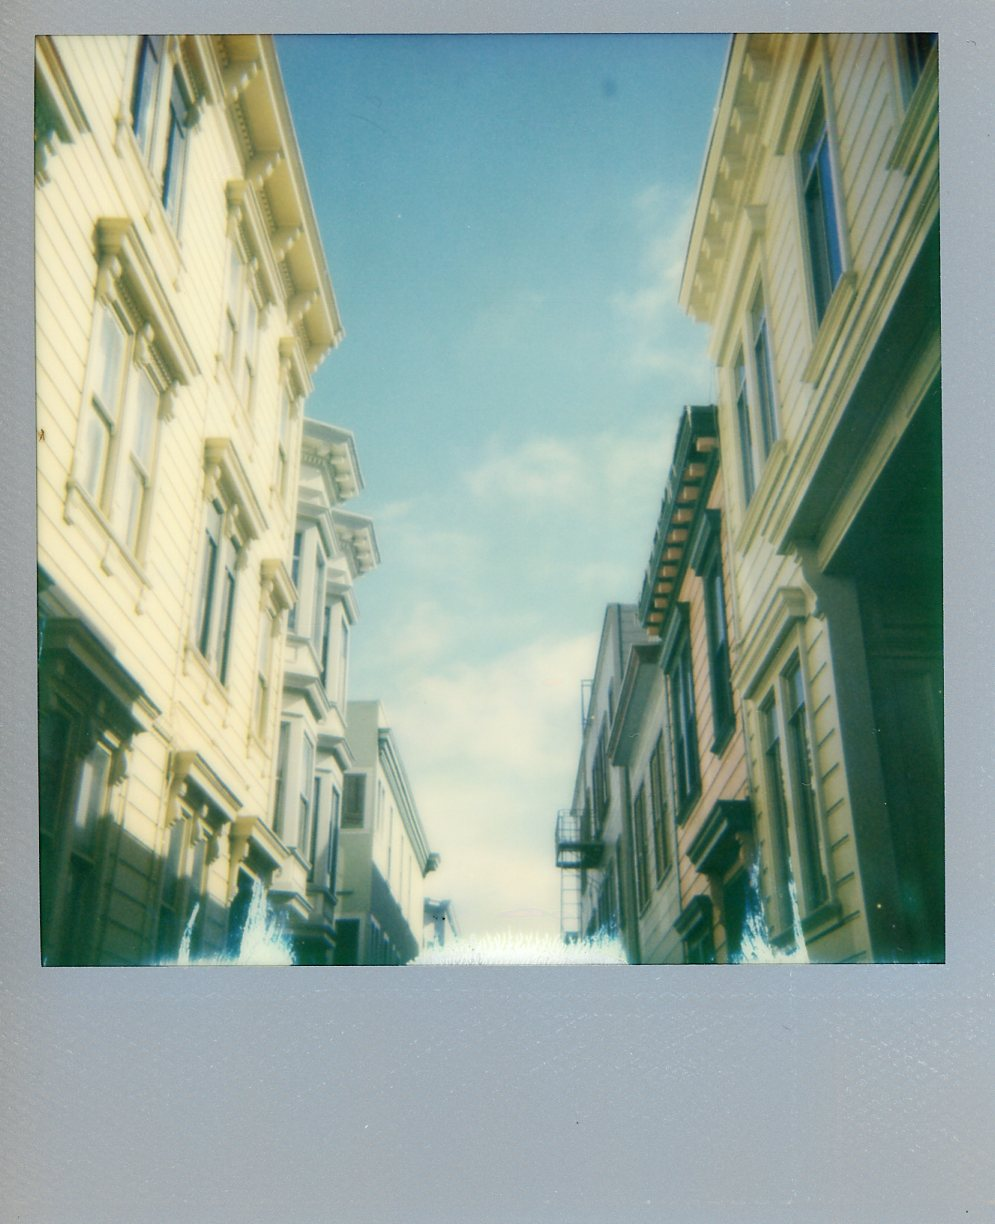 SF_Polaroid023.jpg